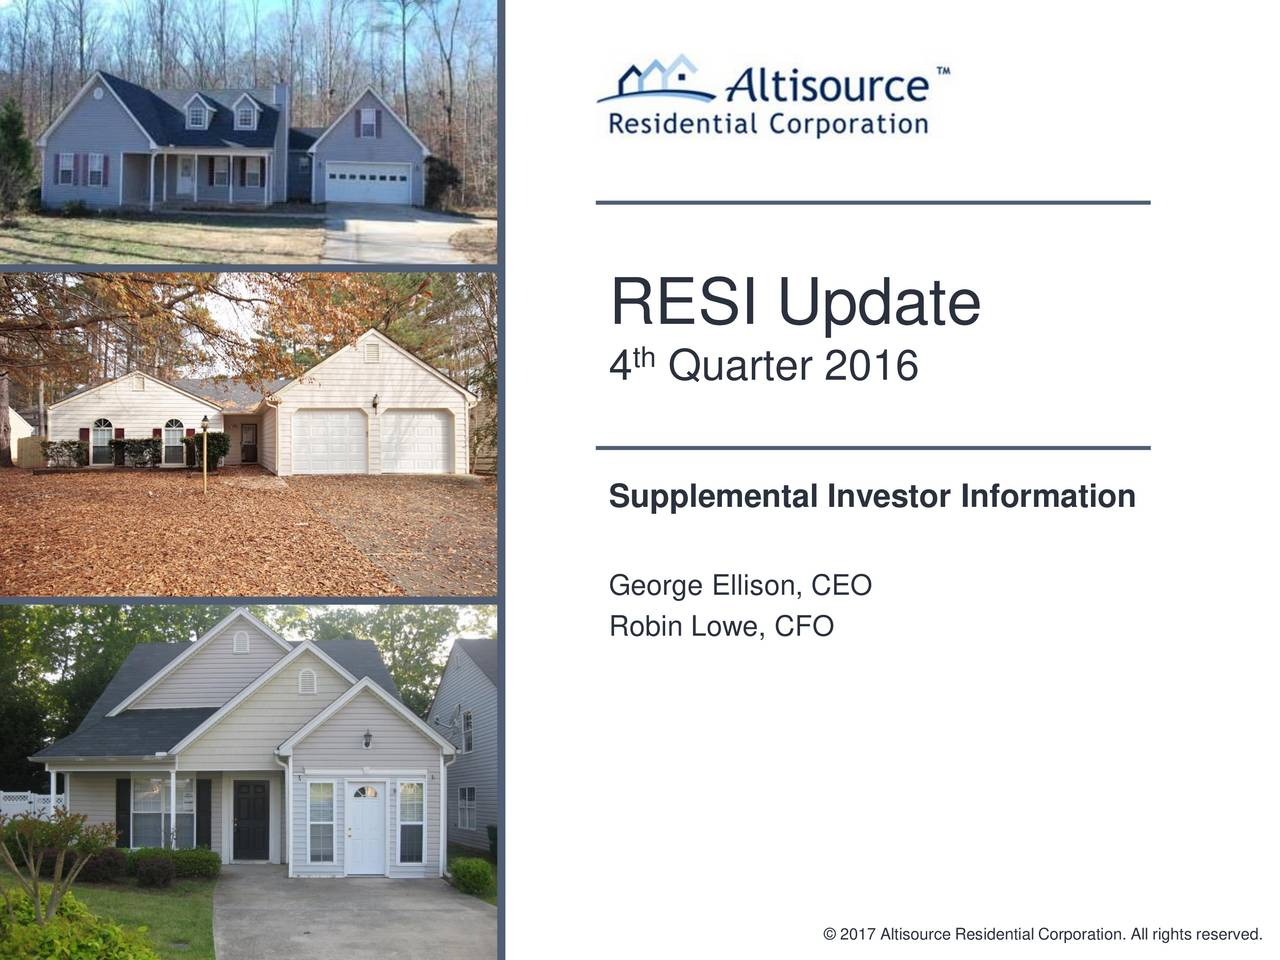 4 Quarter 2016 Supplemental Investor Information George Ellison, CEO Robin Lowe, CFO 2017 Altisource Residential Corporation. All rights reserved.